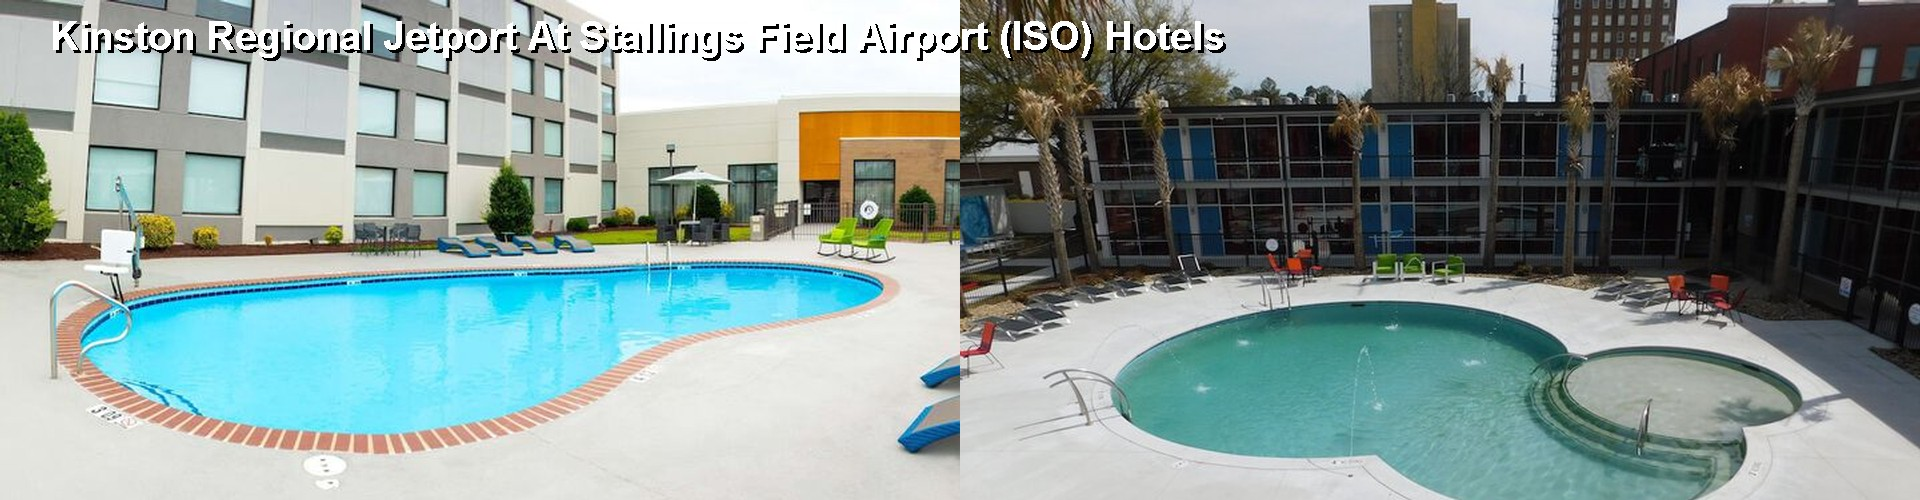 Hotels Near Kinston Regional Jetport At Stallings Field Airport